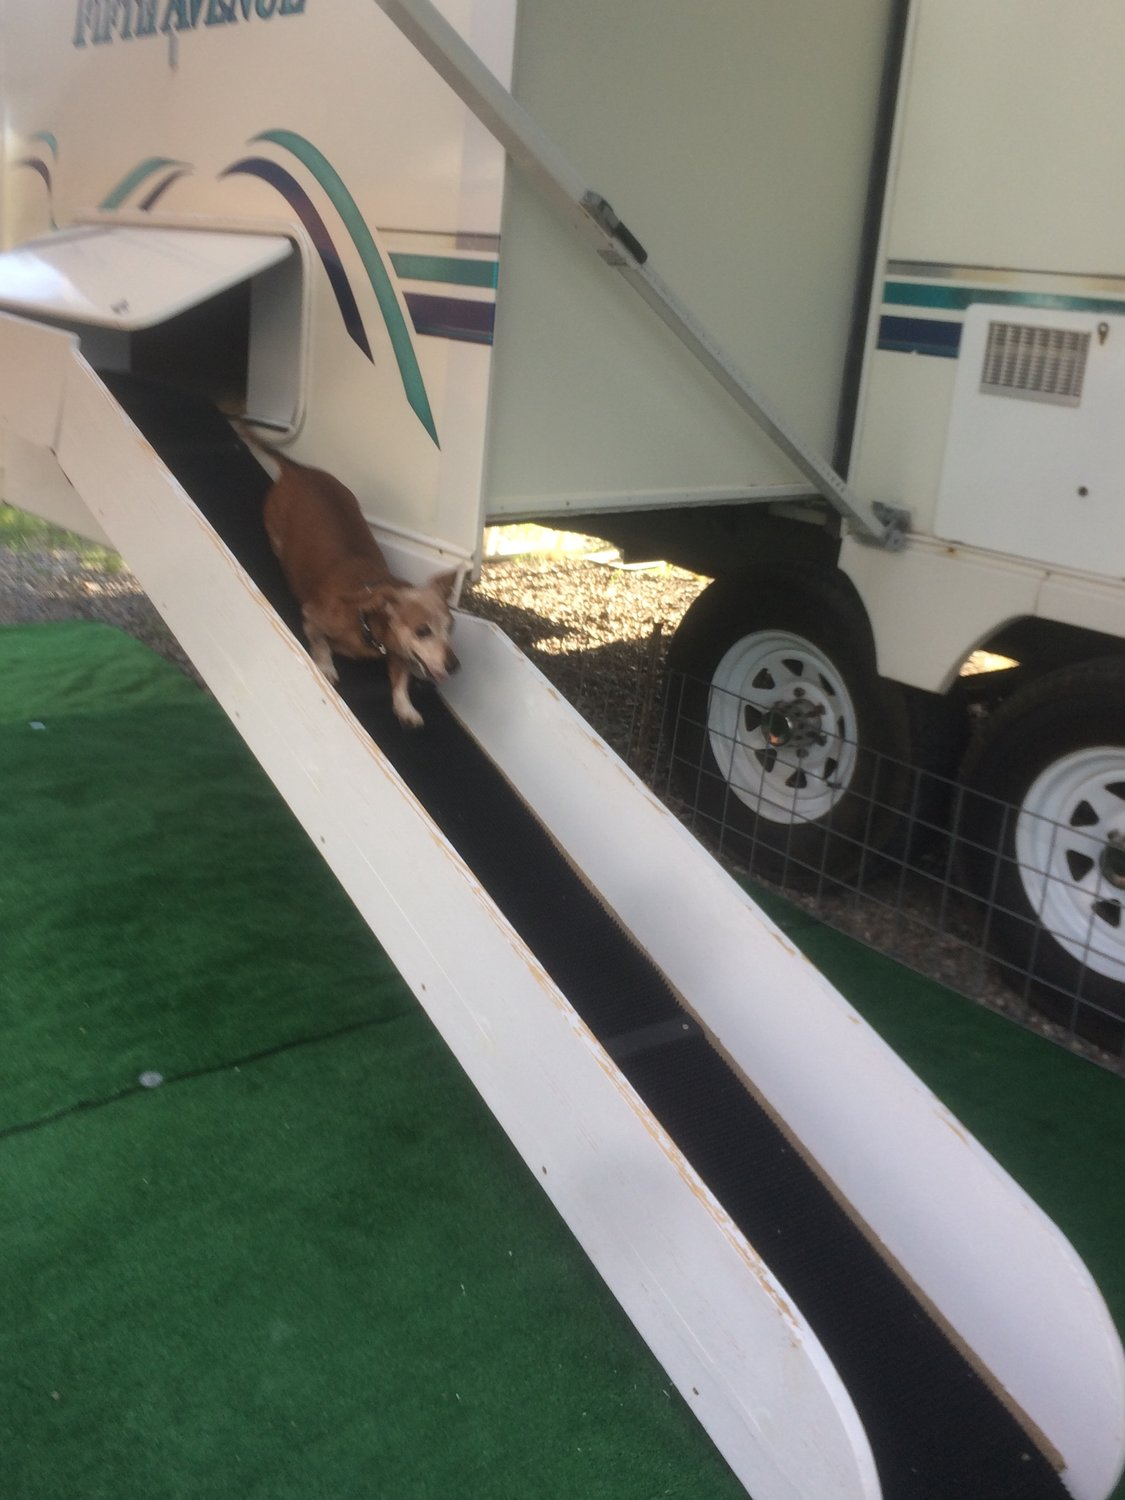 RVing with their dogs is more convenient for Gary and Linda Wee, and more fun for Storm and Breeze, because of this doggy door and ramp, which was built by Gary.